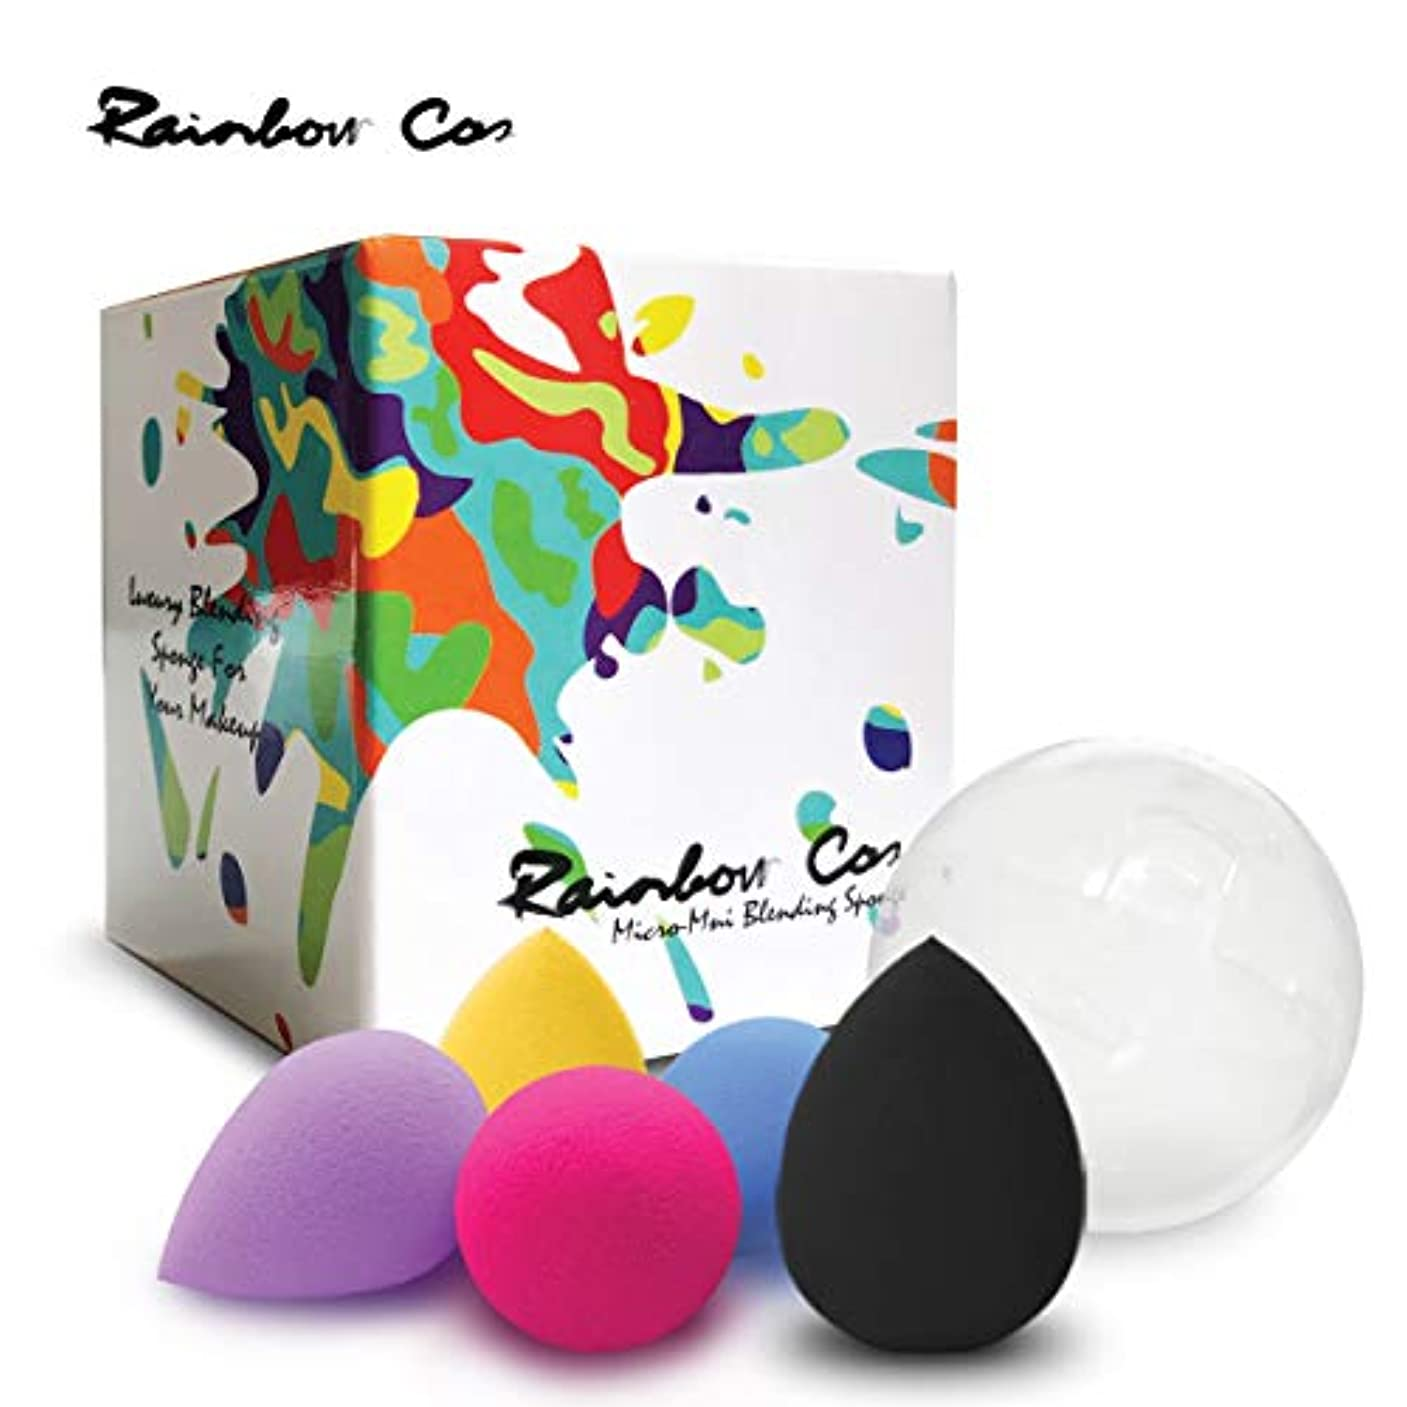 Rainbow Cos 5 PCS Micro Mini Makeup Blender Beauty Sponge set, Foundation Blending Sponge,Flawless for Liquid,...